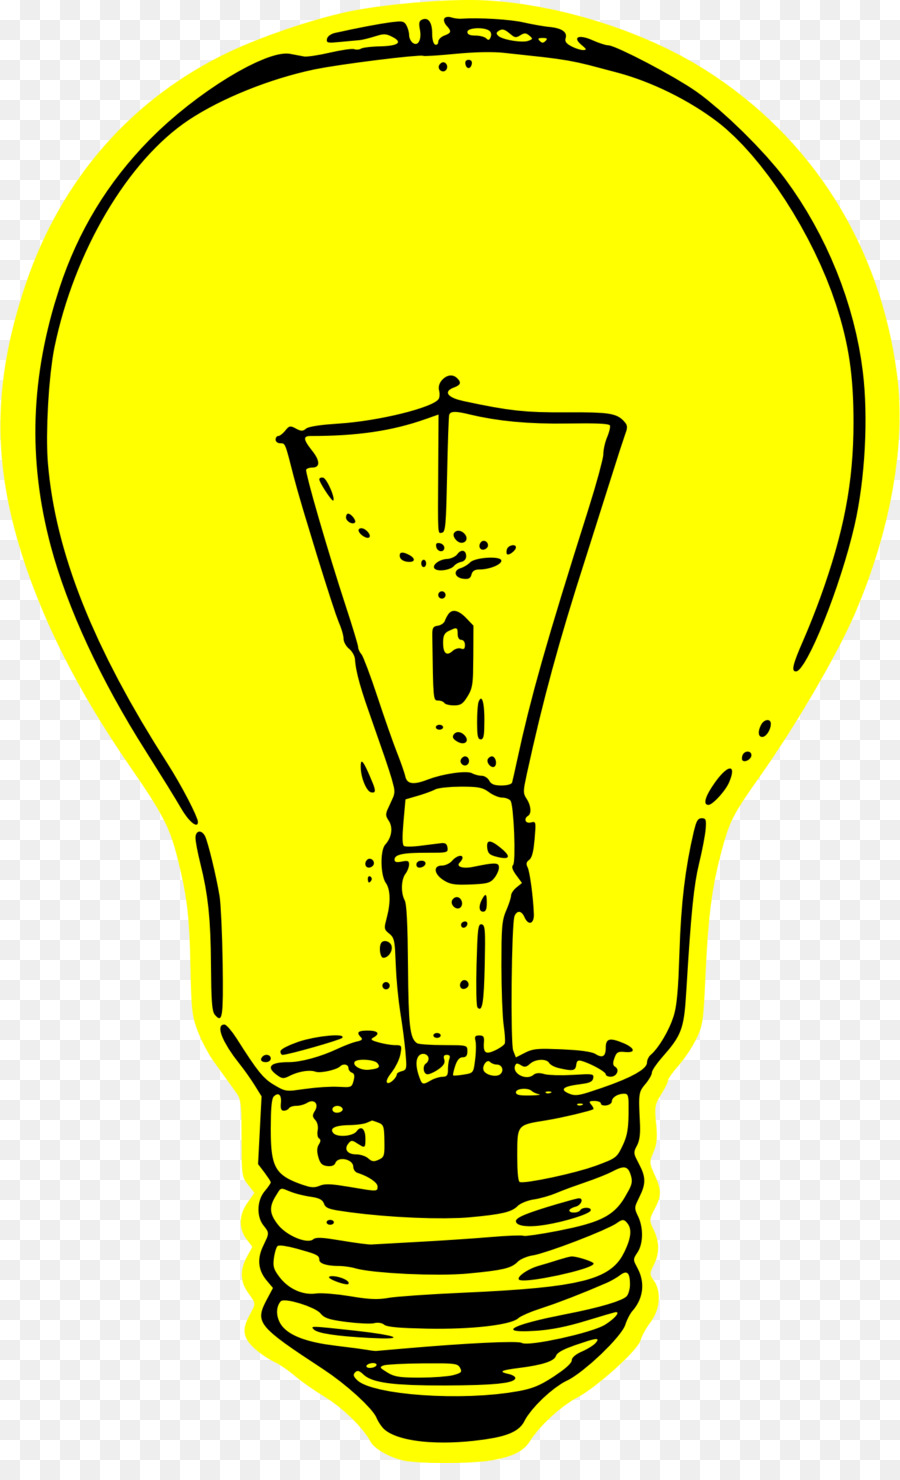 Electrical clipart yellow light bulb. Cartoon electricity